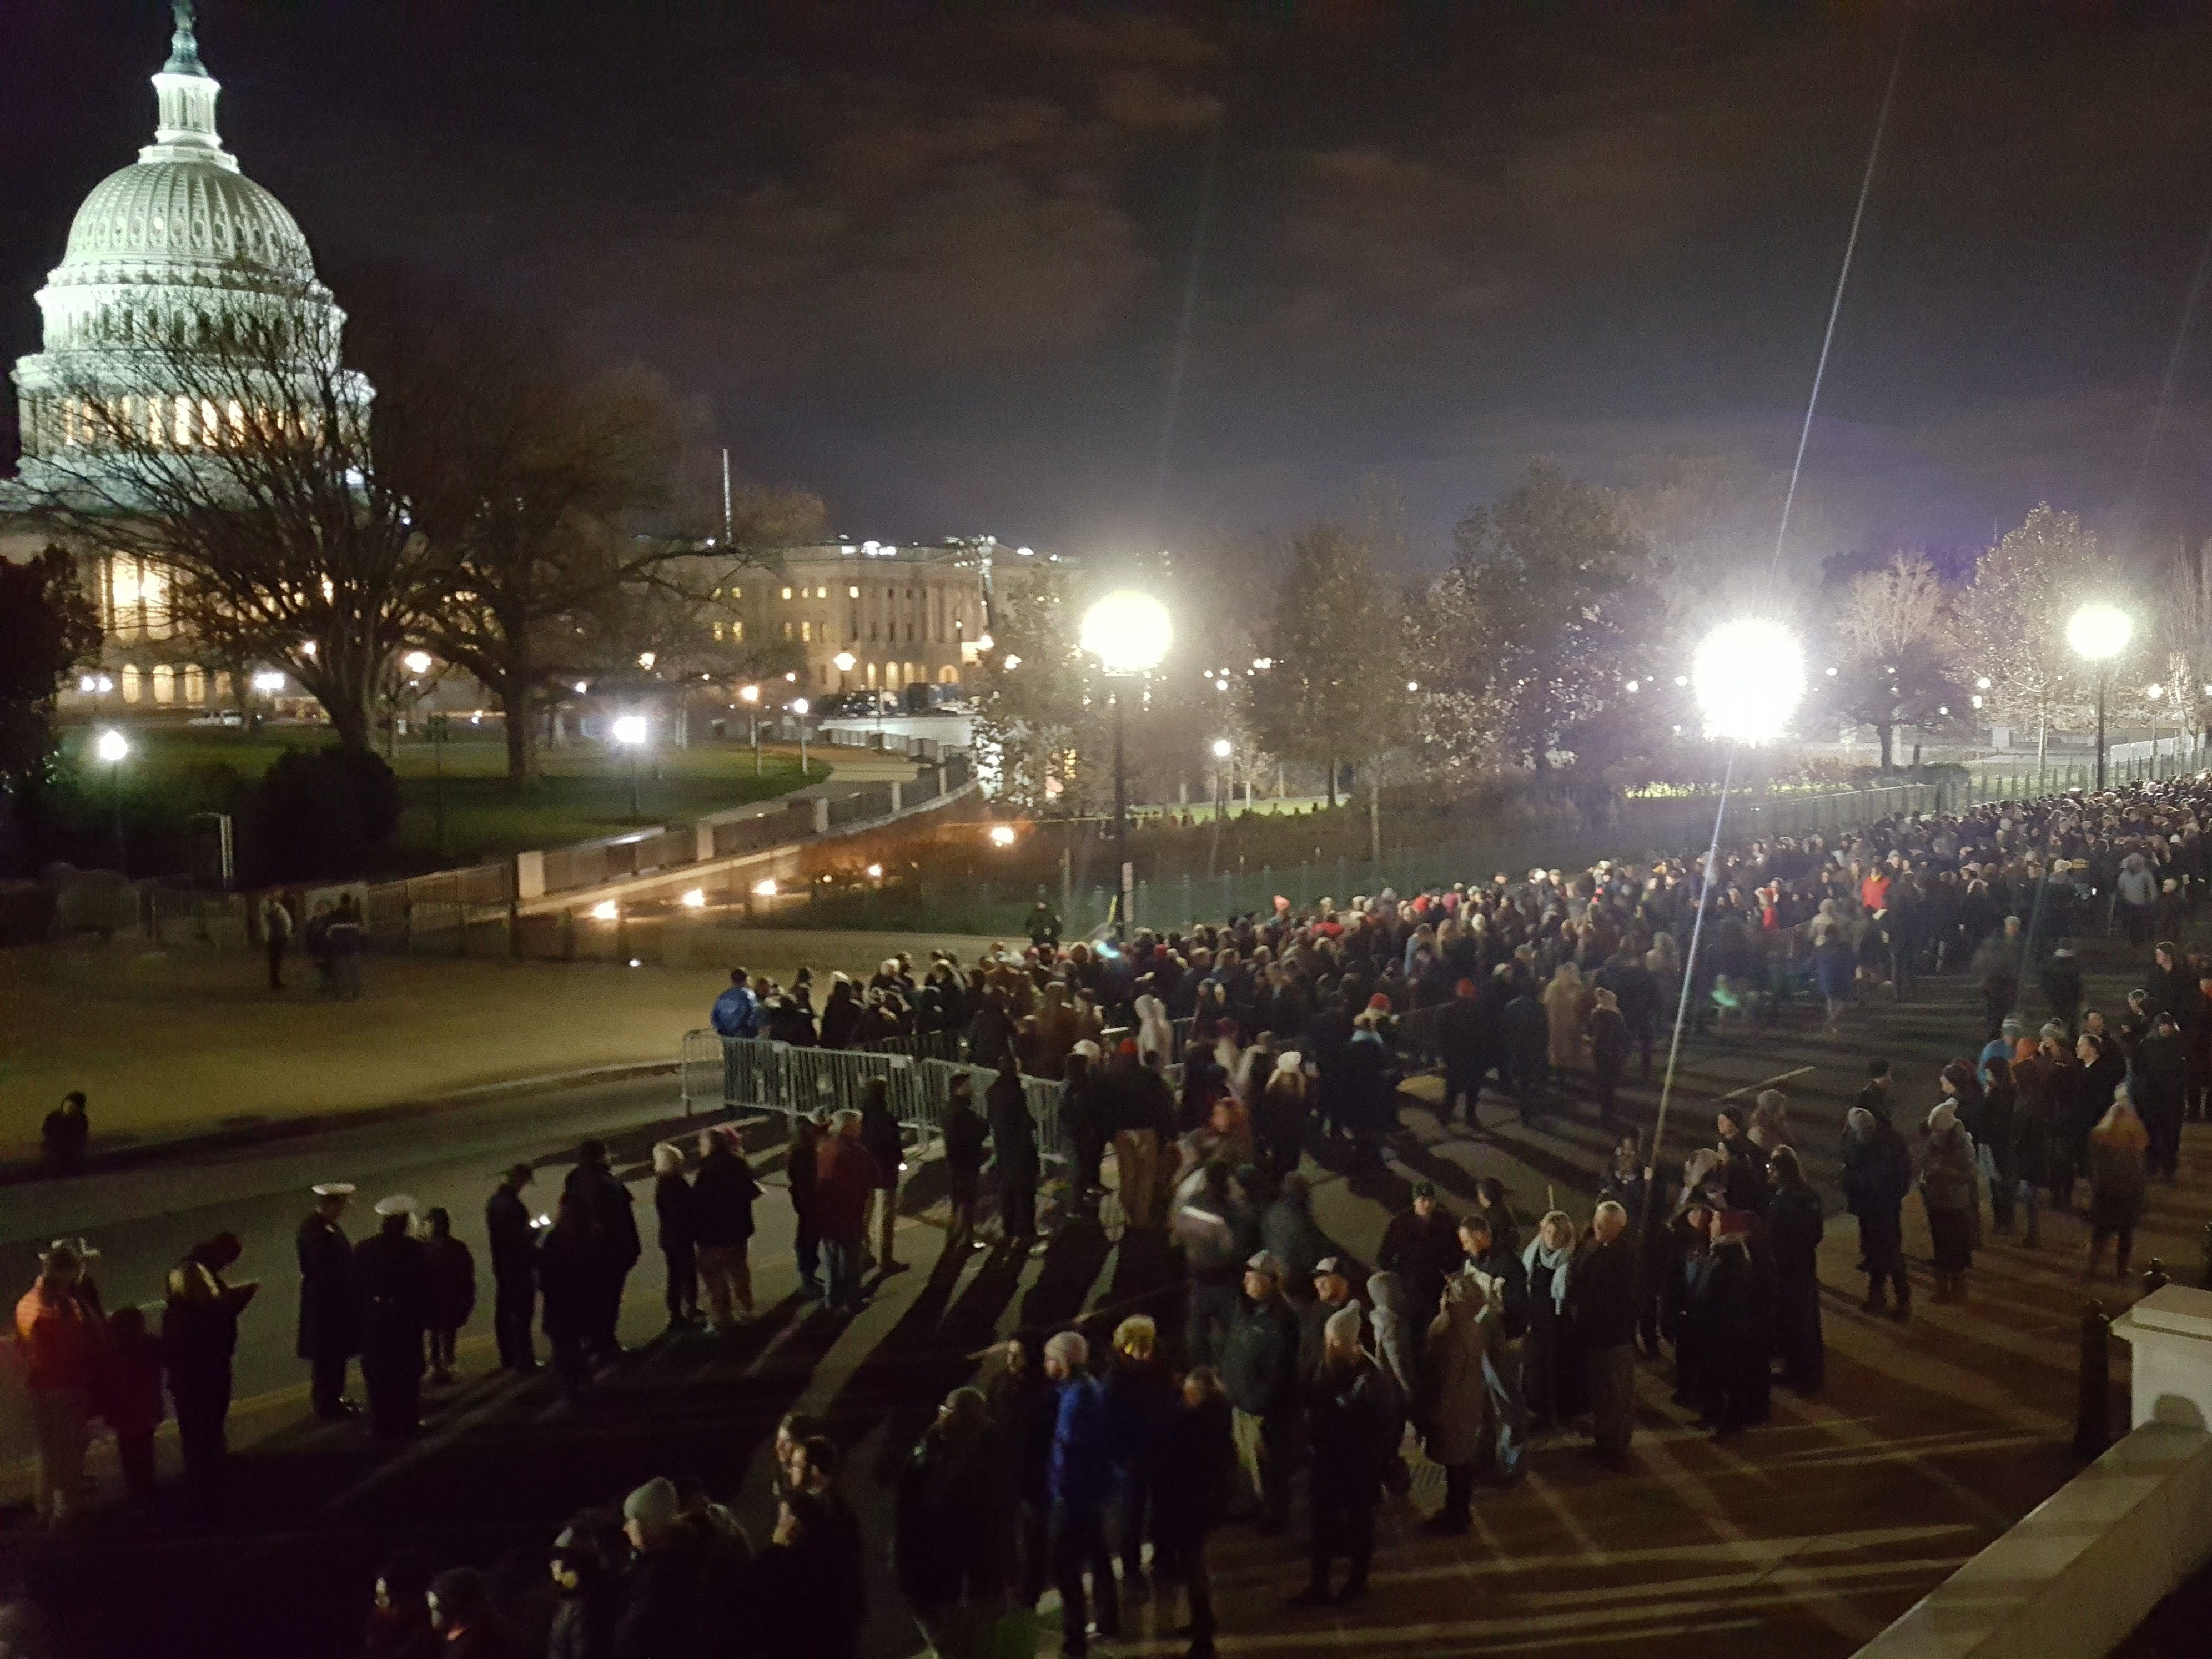 A line of people wait in line to pay their respects to former President George H.W. Bush at the Capitol in Washington, Dec. 4, 2018.